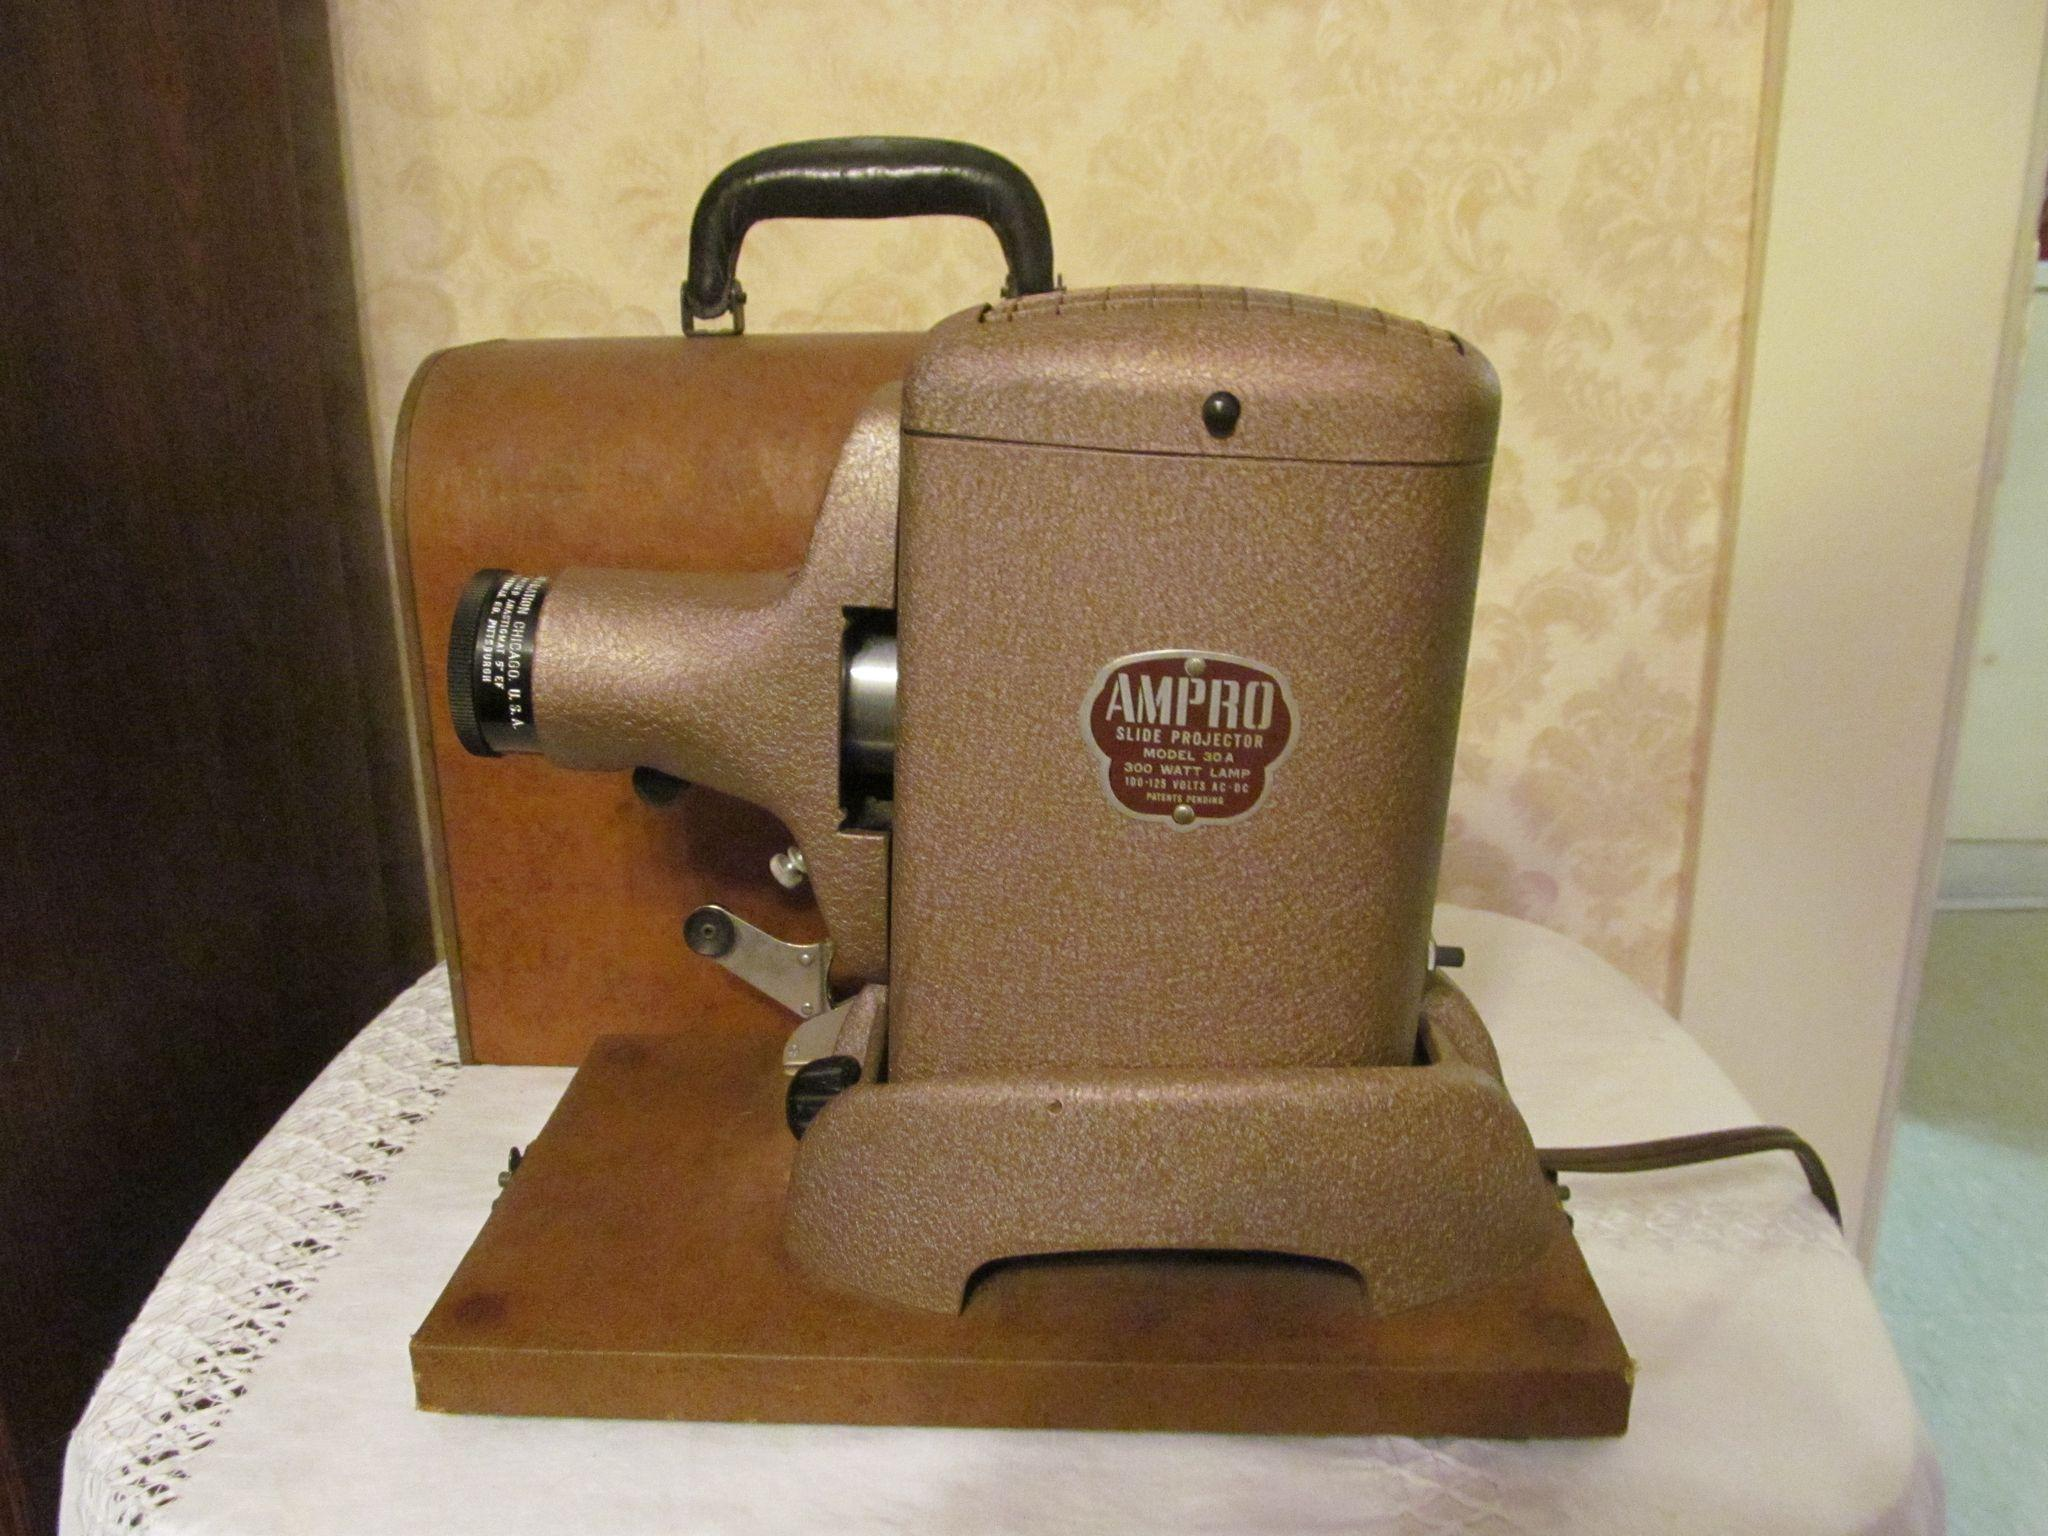 Ampro Slide Projector, Model 30A with Case by the Ampro Corporation, Works